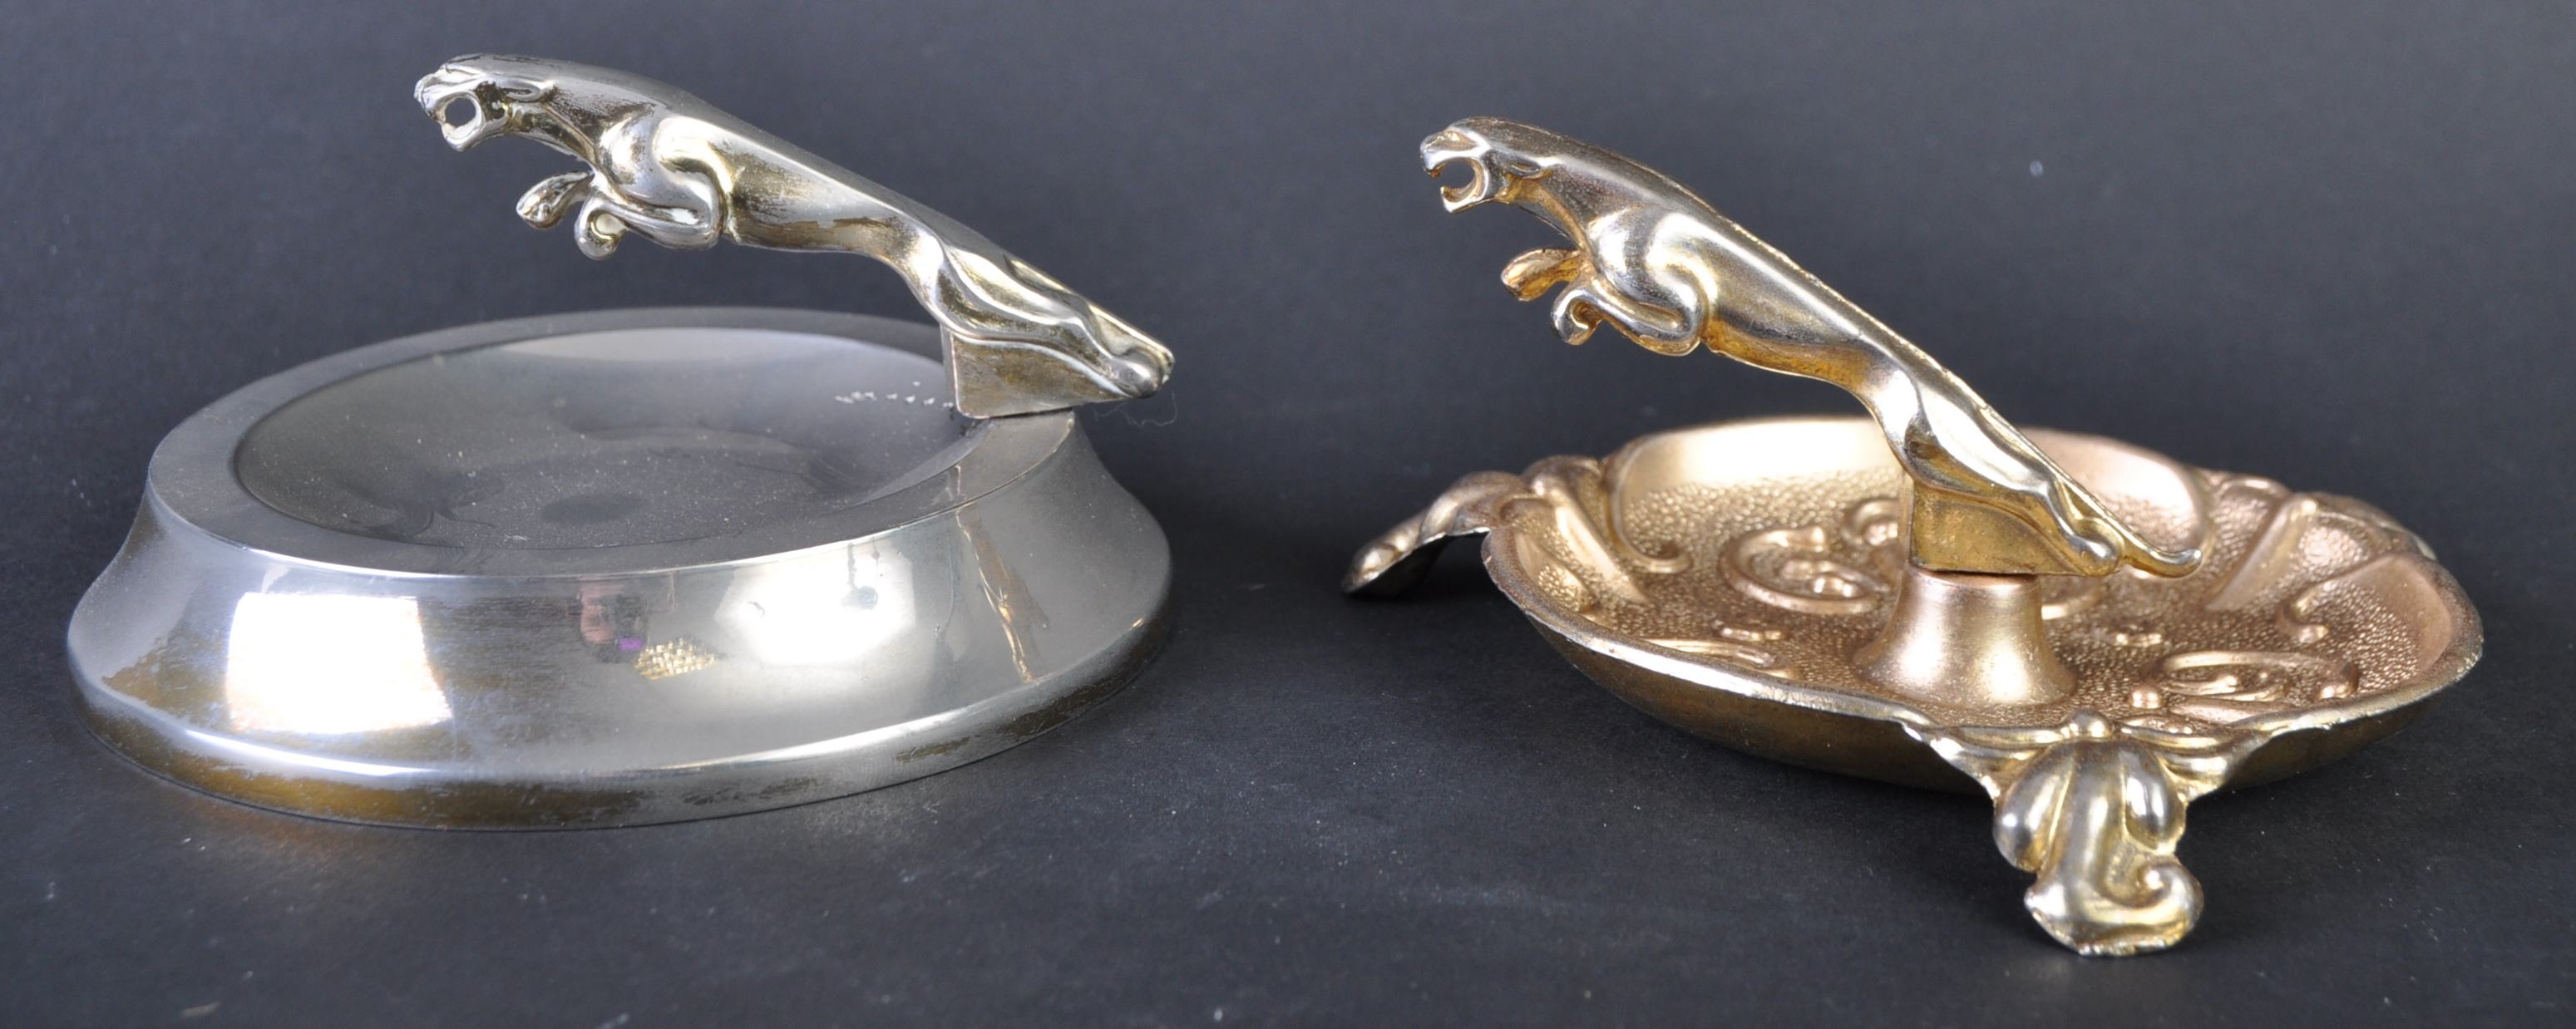 JAGUAR - TWO VINTAGE PROMOTIONAL JAGUAR LEAPER ASHTRAYS